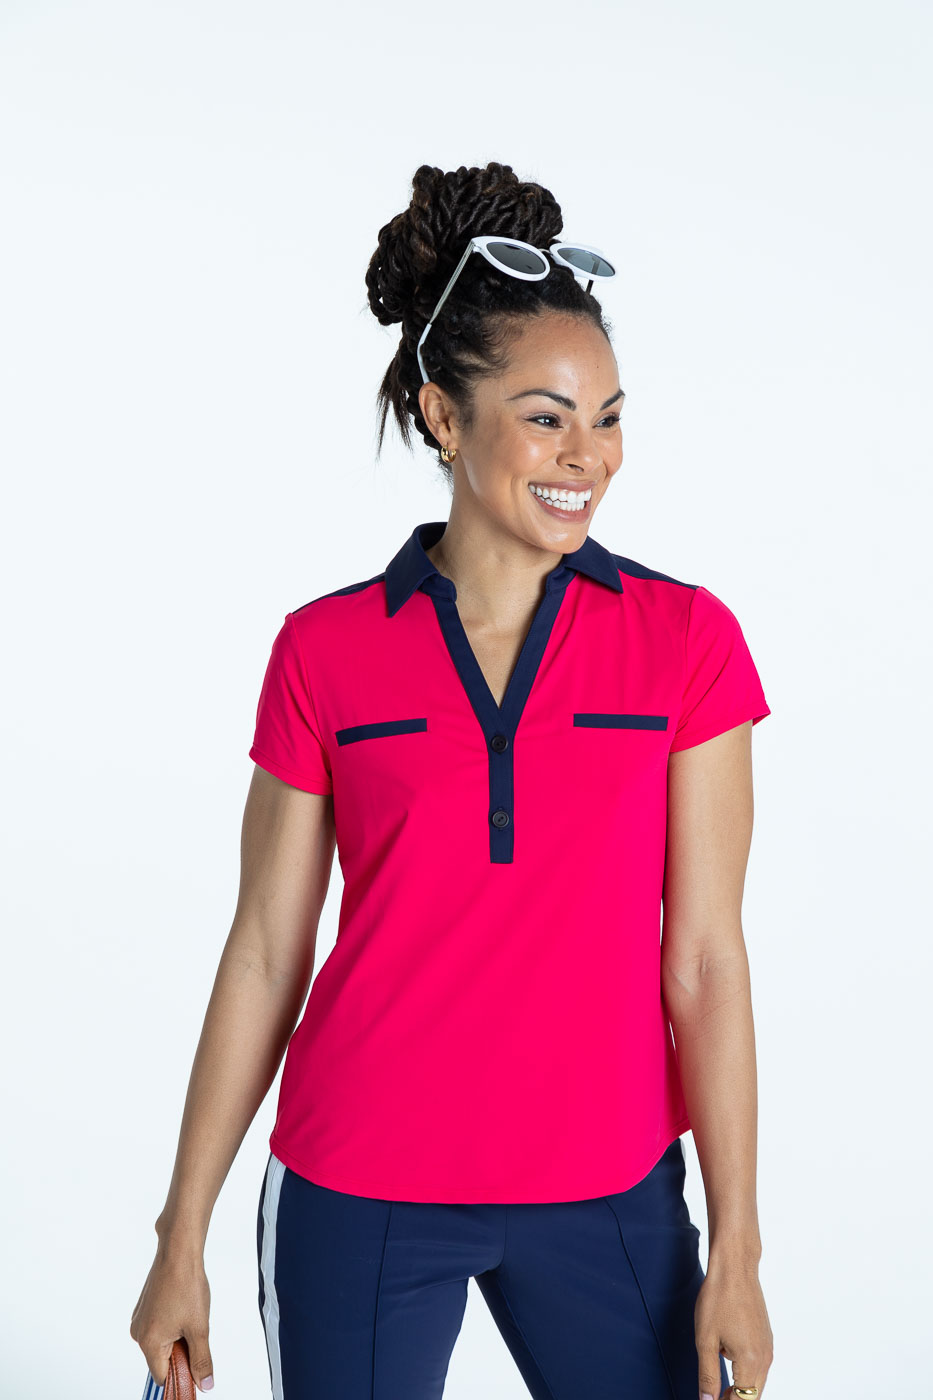 Woman golfer in a raspberry red Shoulder Opener Shortsleeve golf shirt and  navy blue Tailred Track Golf Pant.